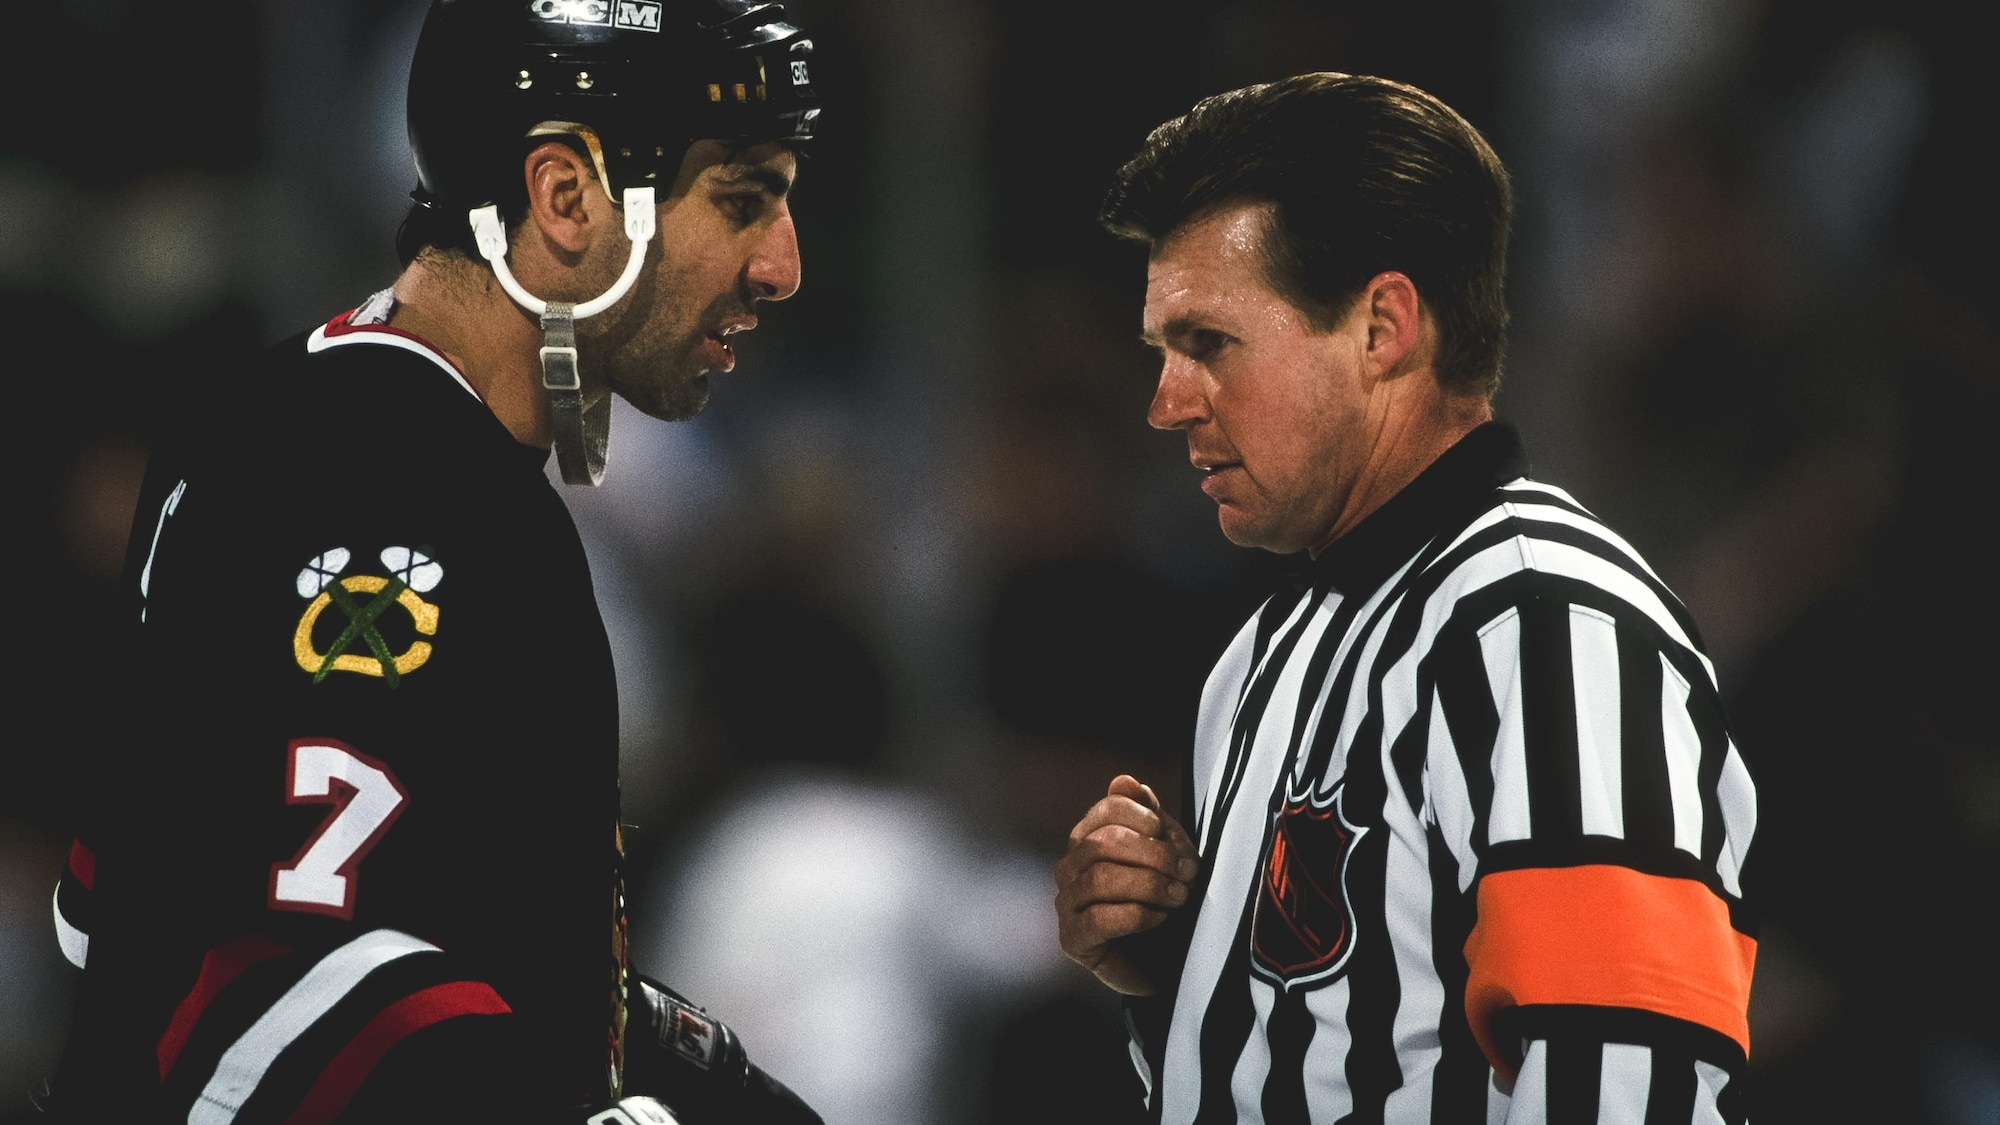 Kerry Fraser discute avec Chris Chelios, capitaine des Blackhawks de Chicago, au printemps 1998.